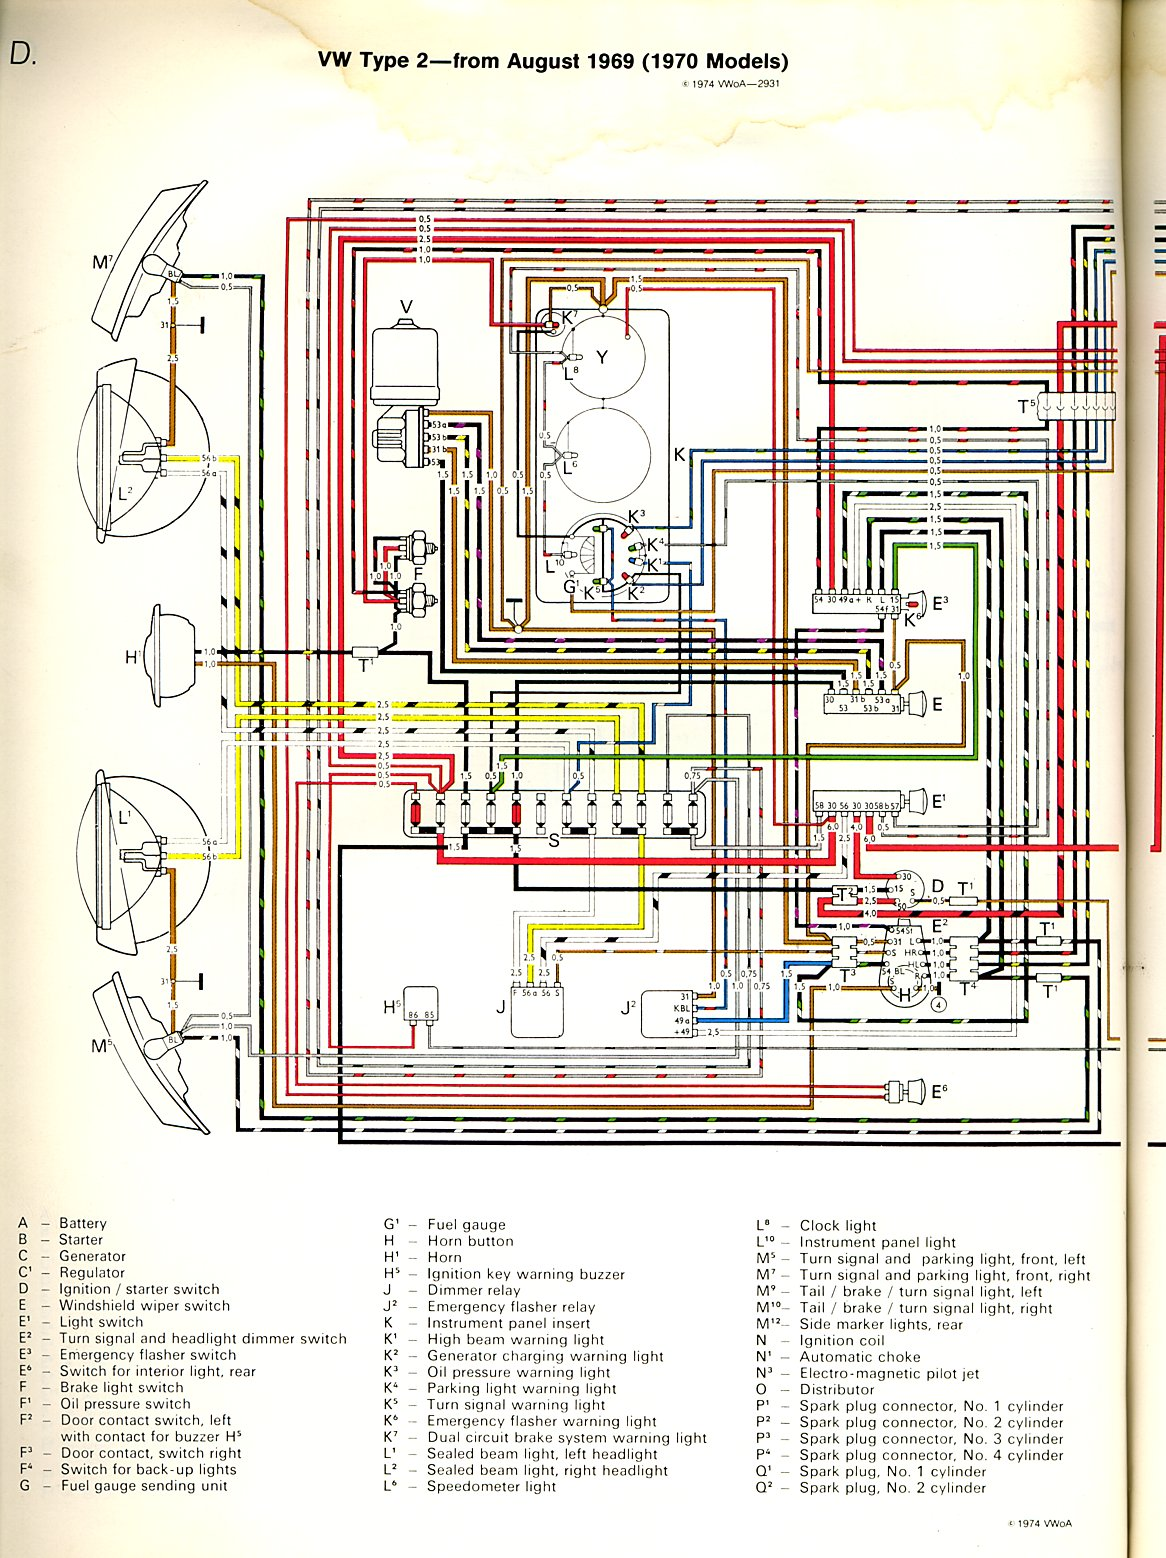 baybus_70a vw bus wiring diagram 1965 vw bus wiring diagram \u2022 wiring diagrams VW Bus Ignition Coil at cos-gaming.co